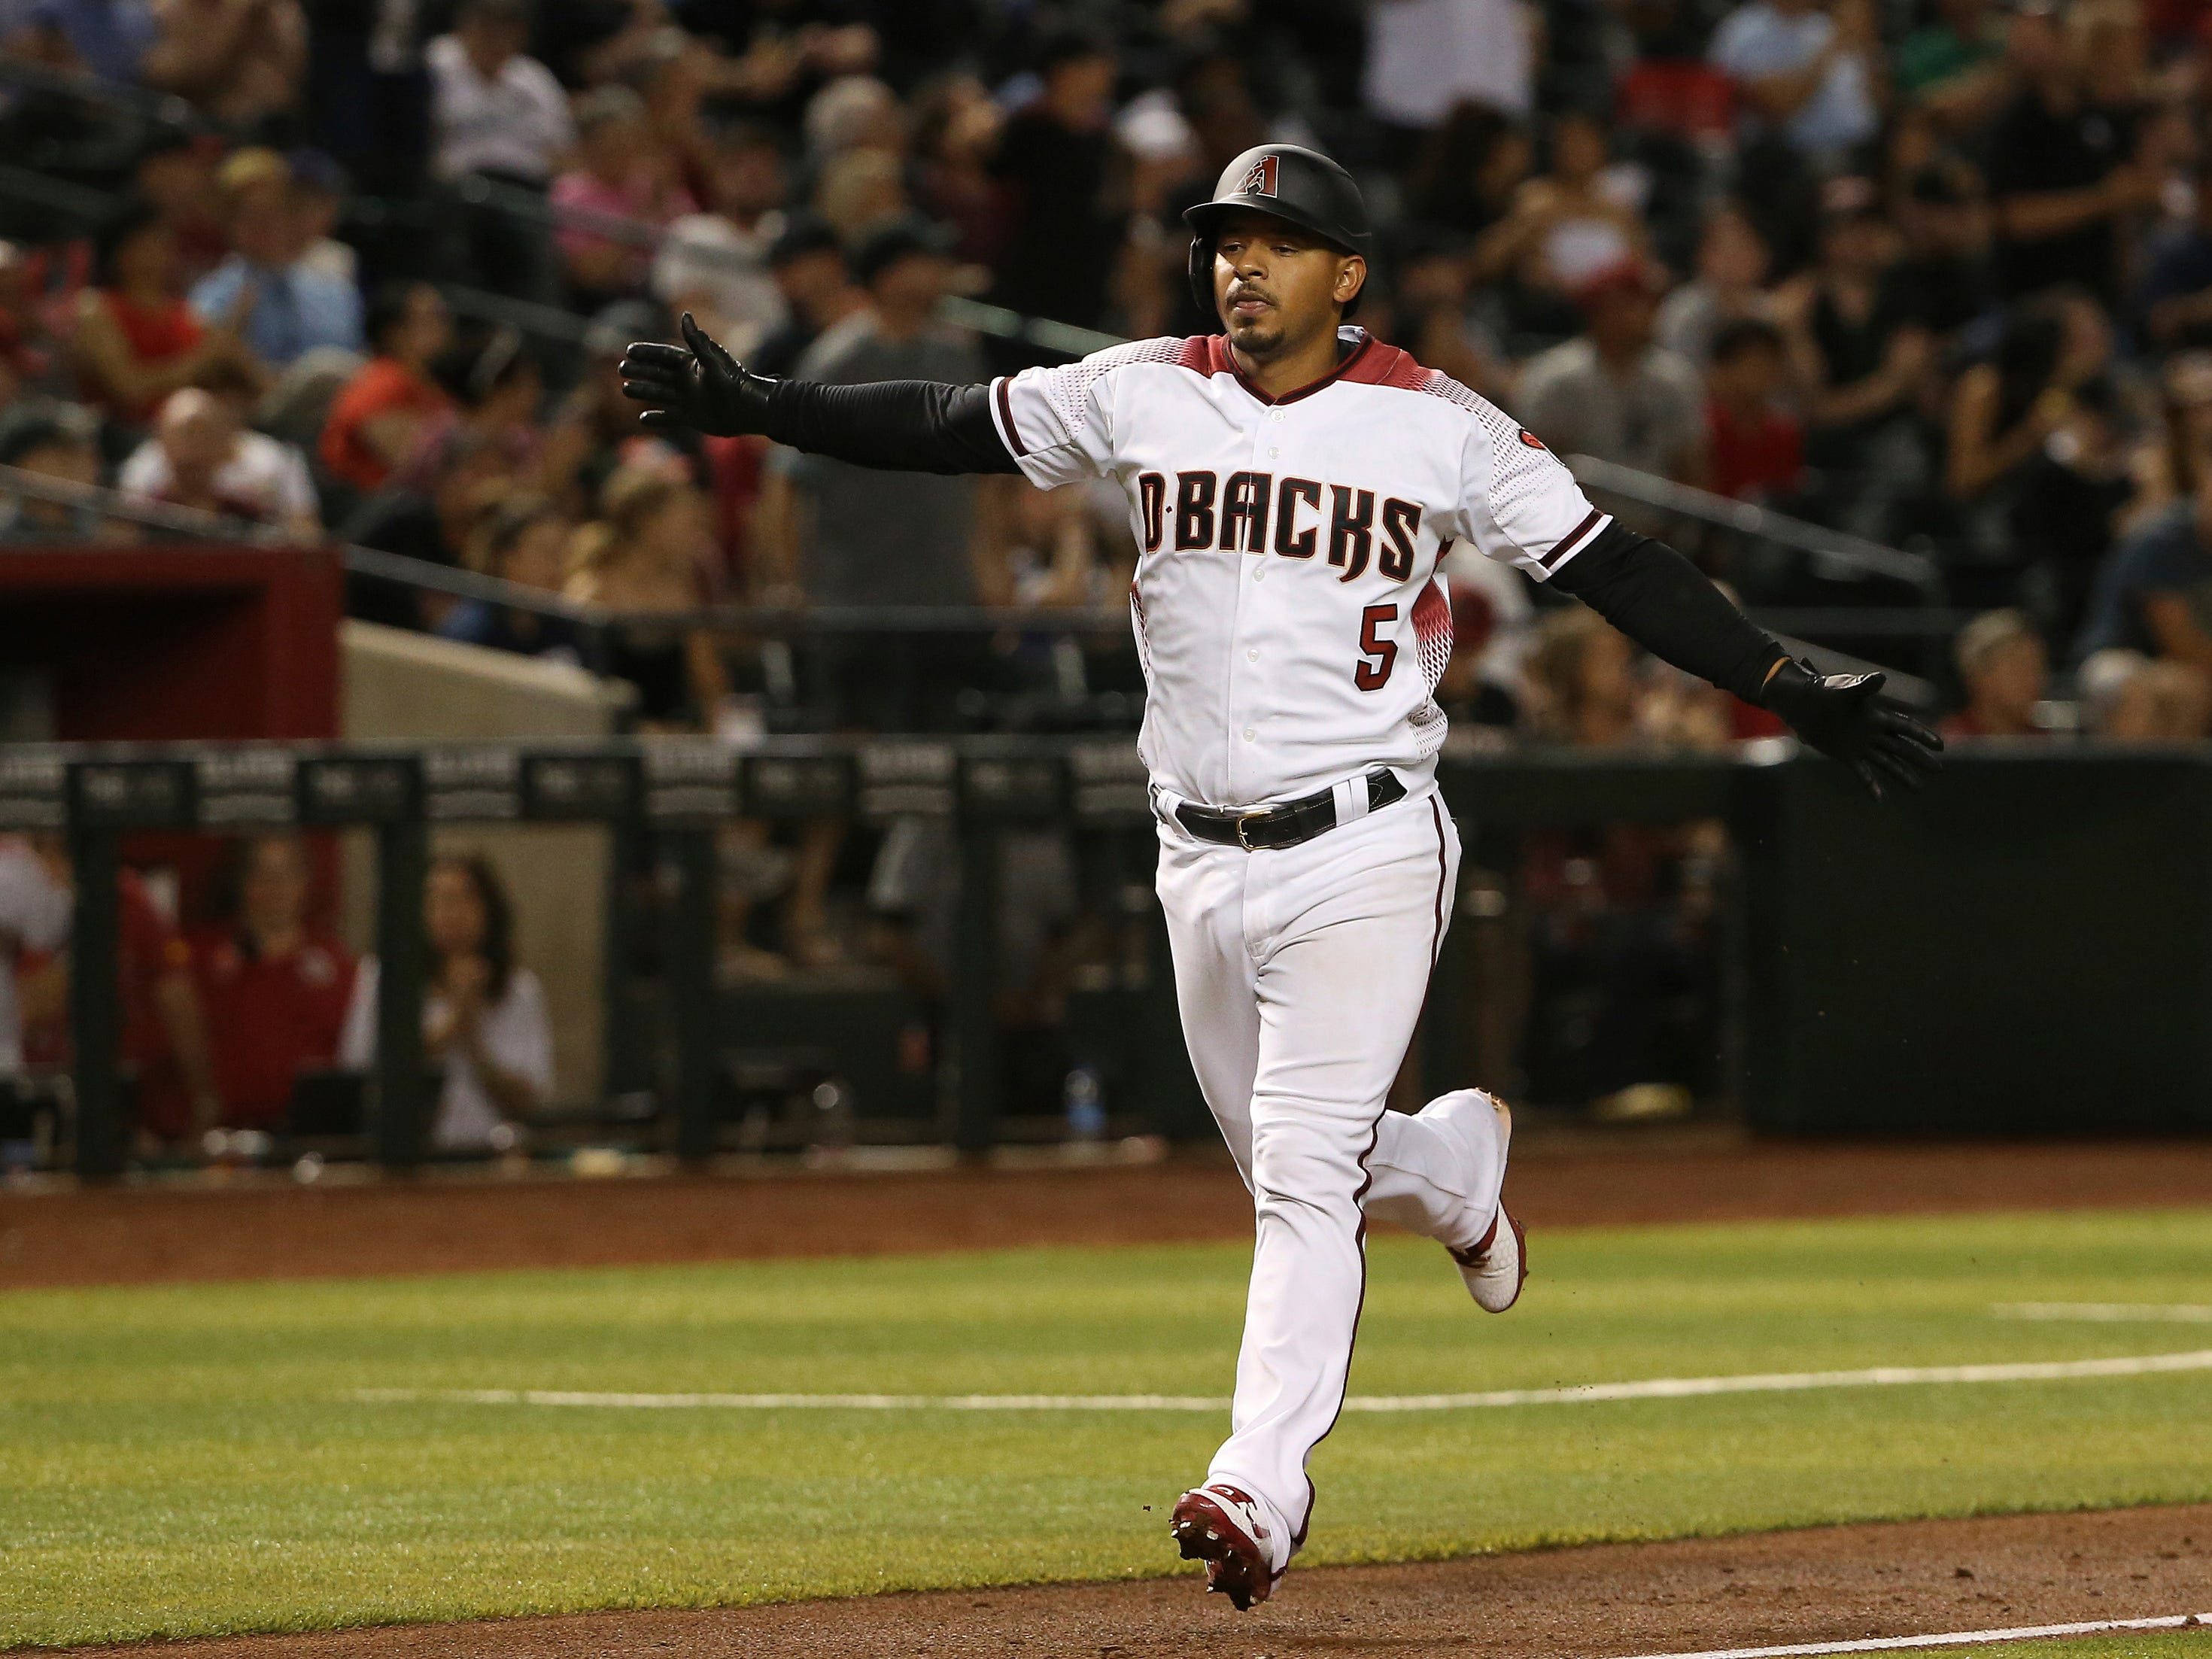 Arizona Diamondbacks' Eduardo Escobar celebrates his home run against the Pittsburgh Pirates during the fourth inning of a baseball game Monday, May 13, 2019, in Phoenix.